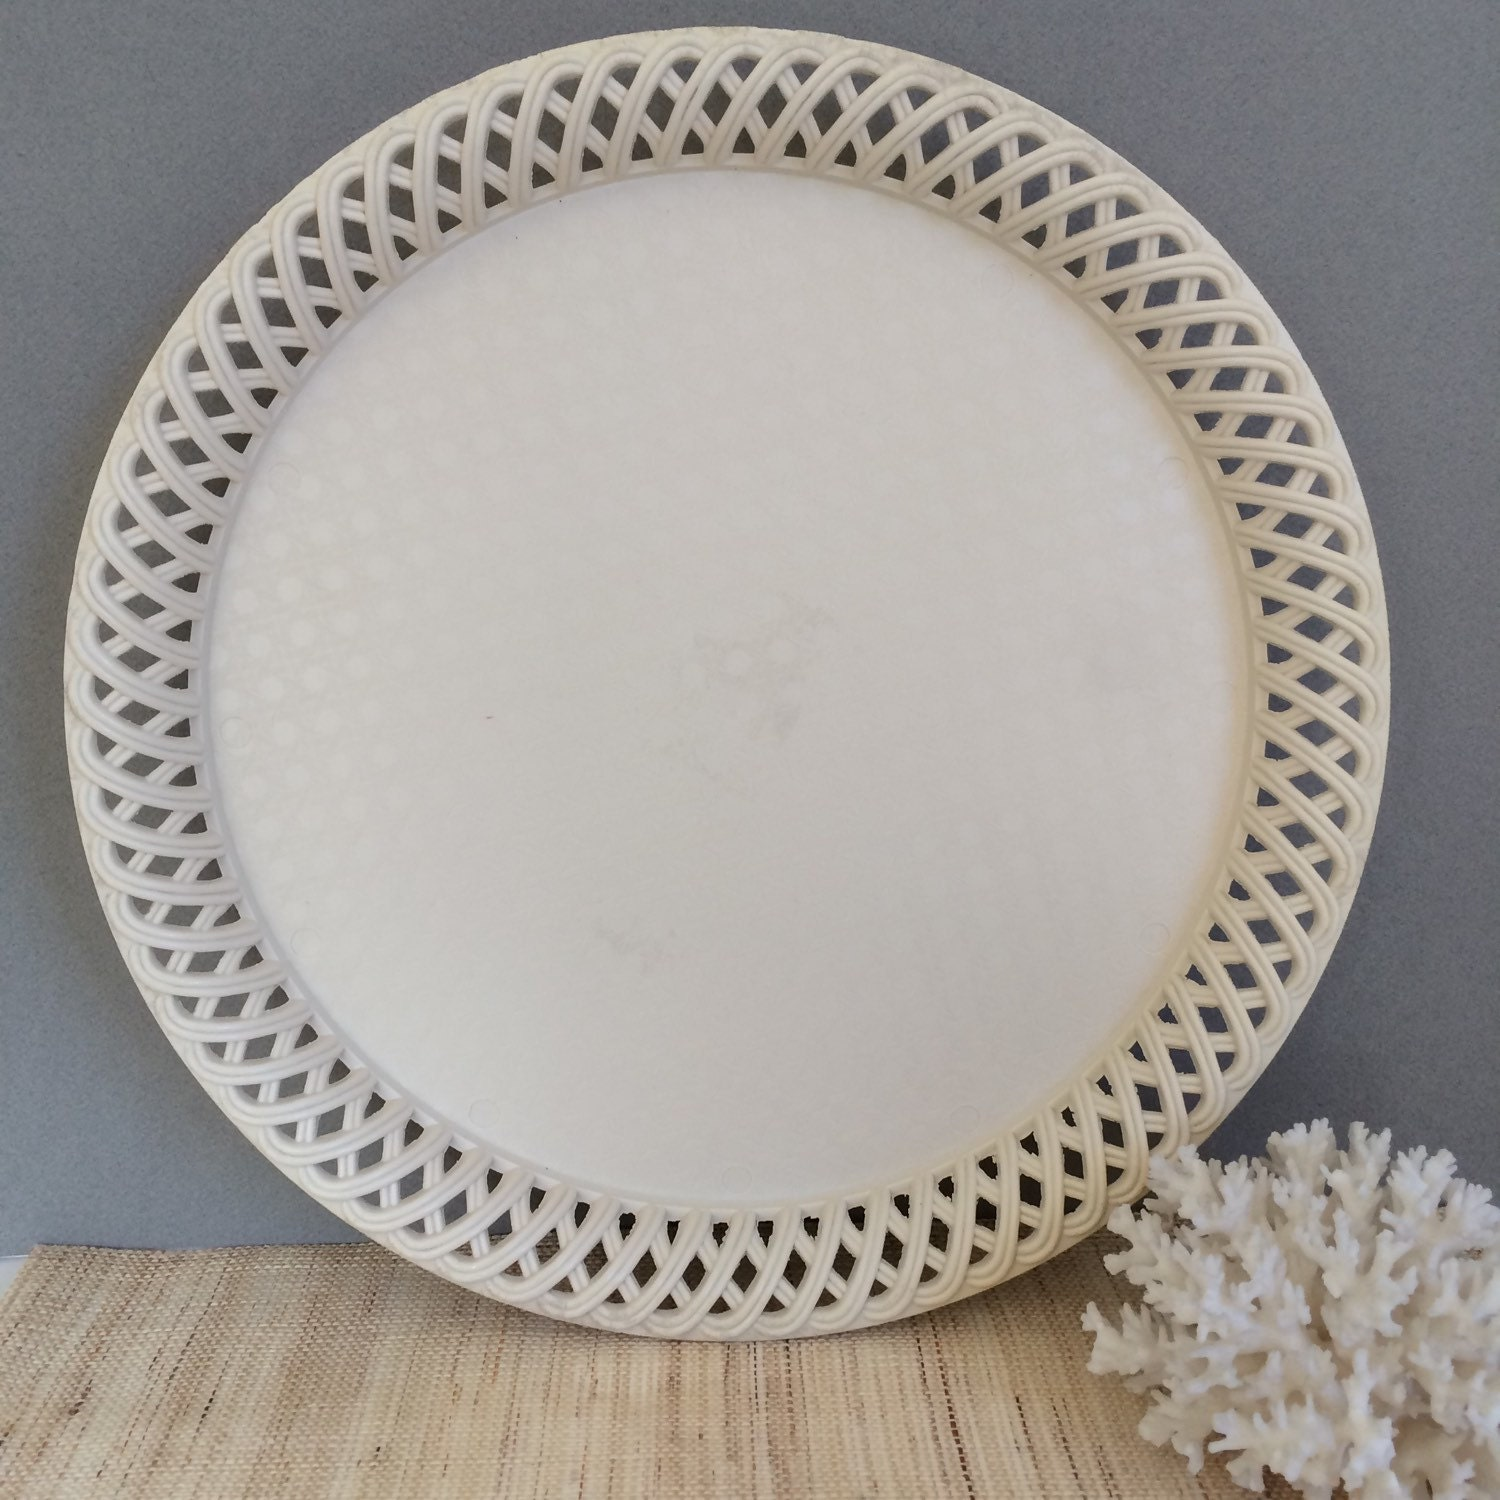 vintage round tray plastic tray large round tray shabby. Black Bedroom Furniture Sets. Home Design Ideas